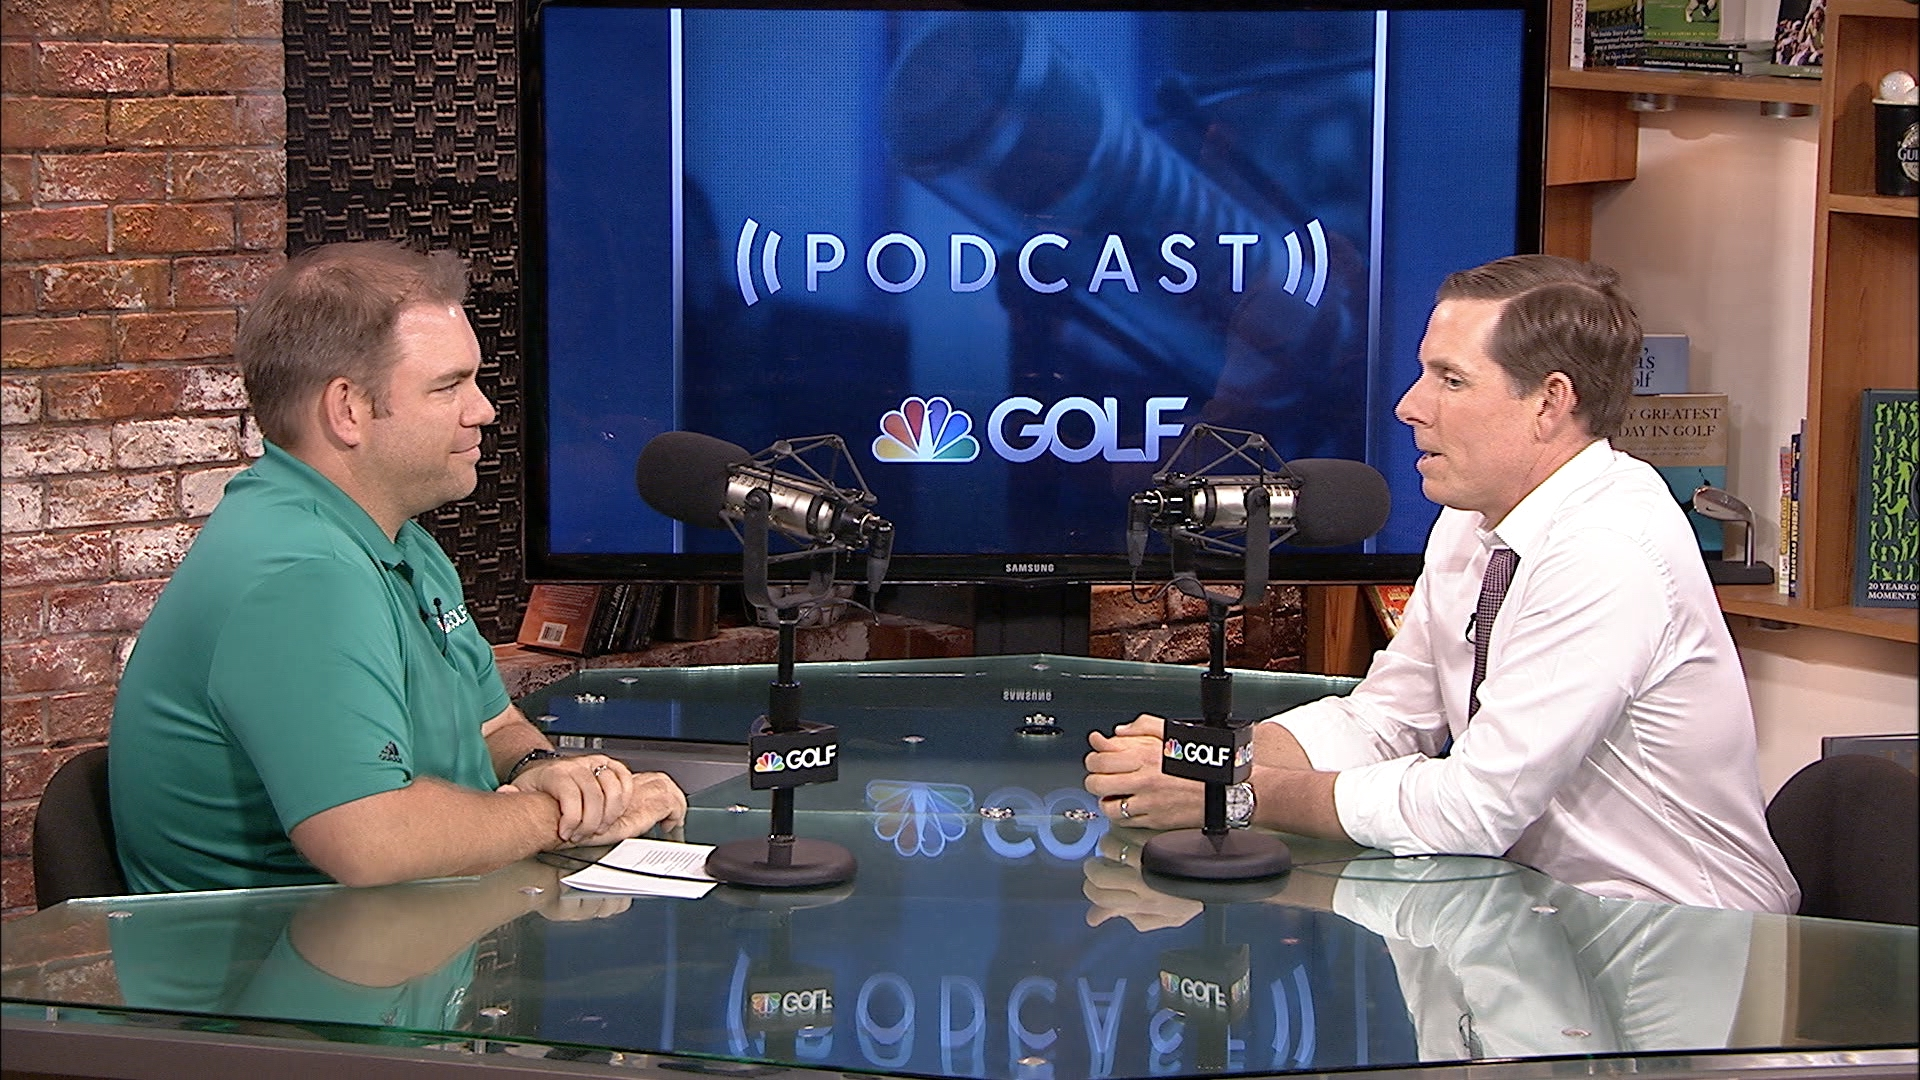 Sofa King Podcast Challenger Http Golfchannel Media Guid 8ad1b88f C46c 4a69 9376